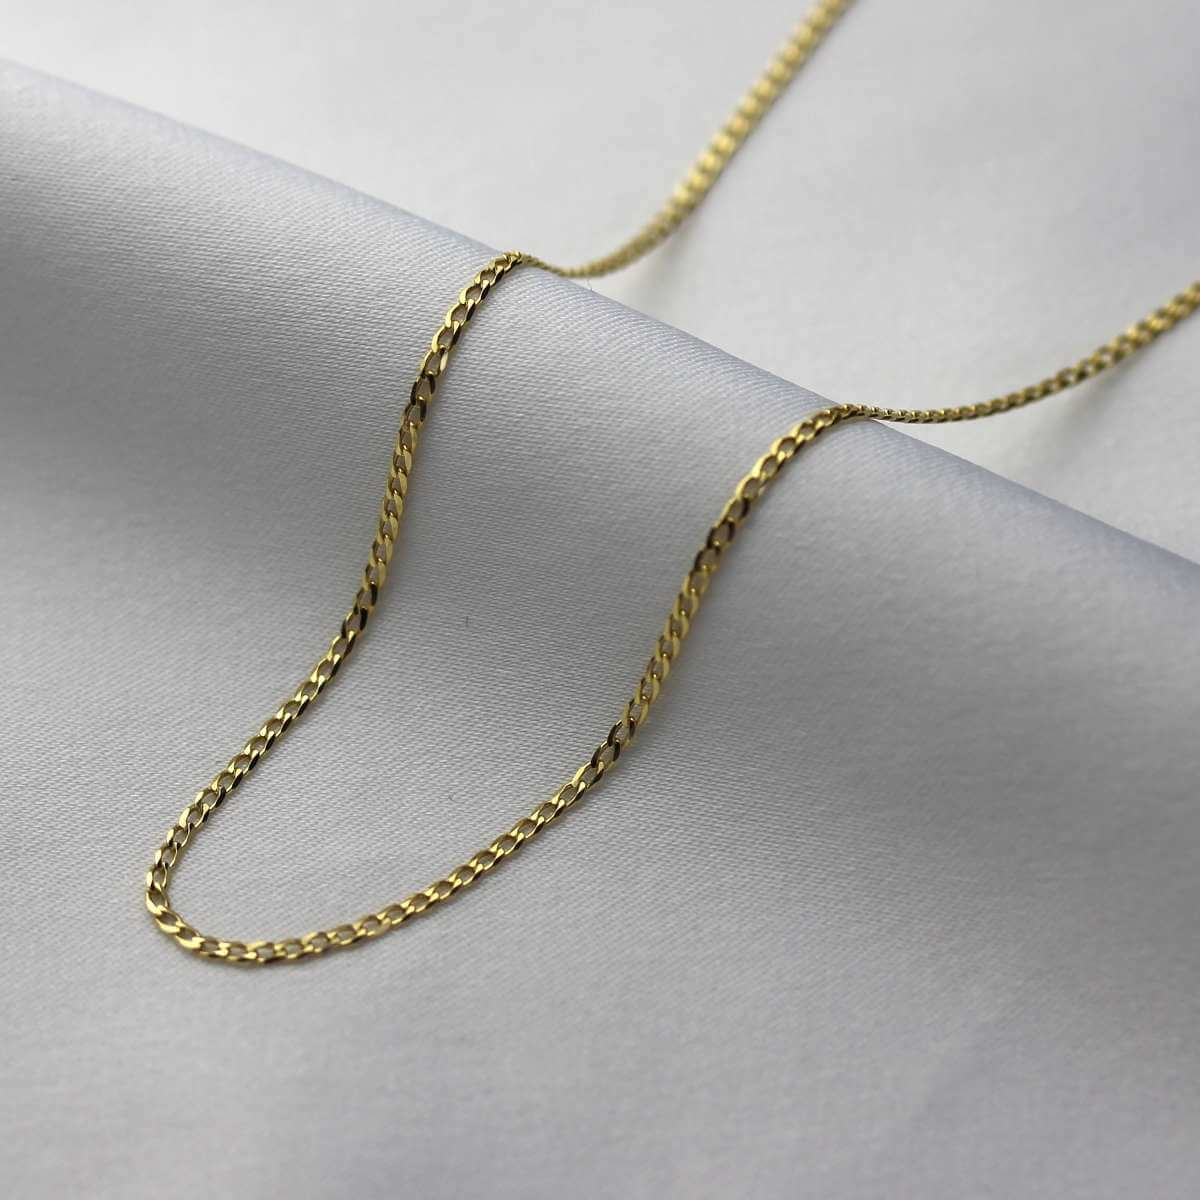 9ct Gold 1.3mm Faceted Flat Curb Chain Necklace 18 - 24 Inches